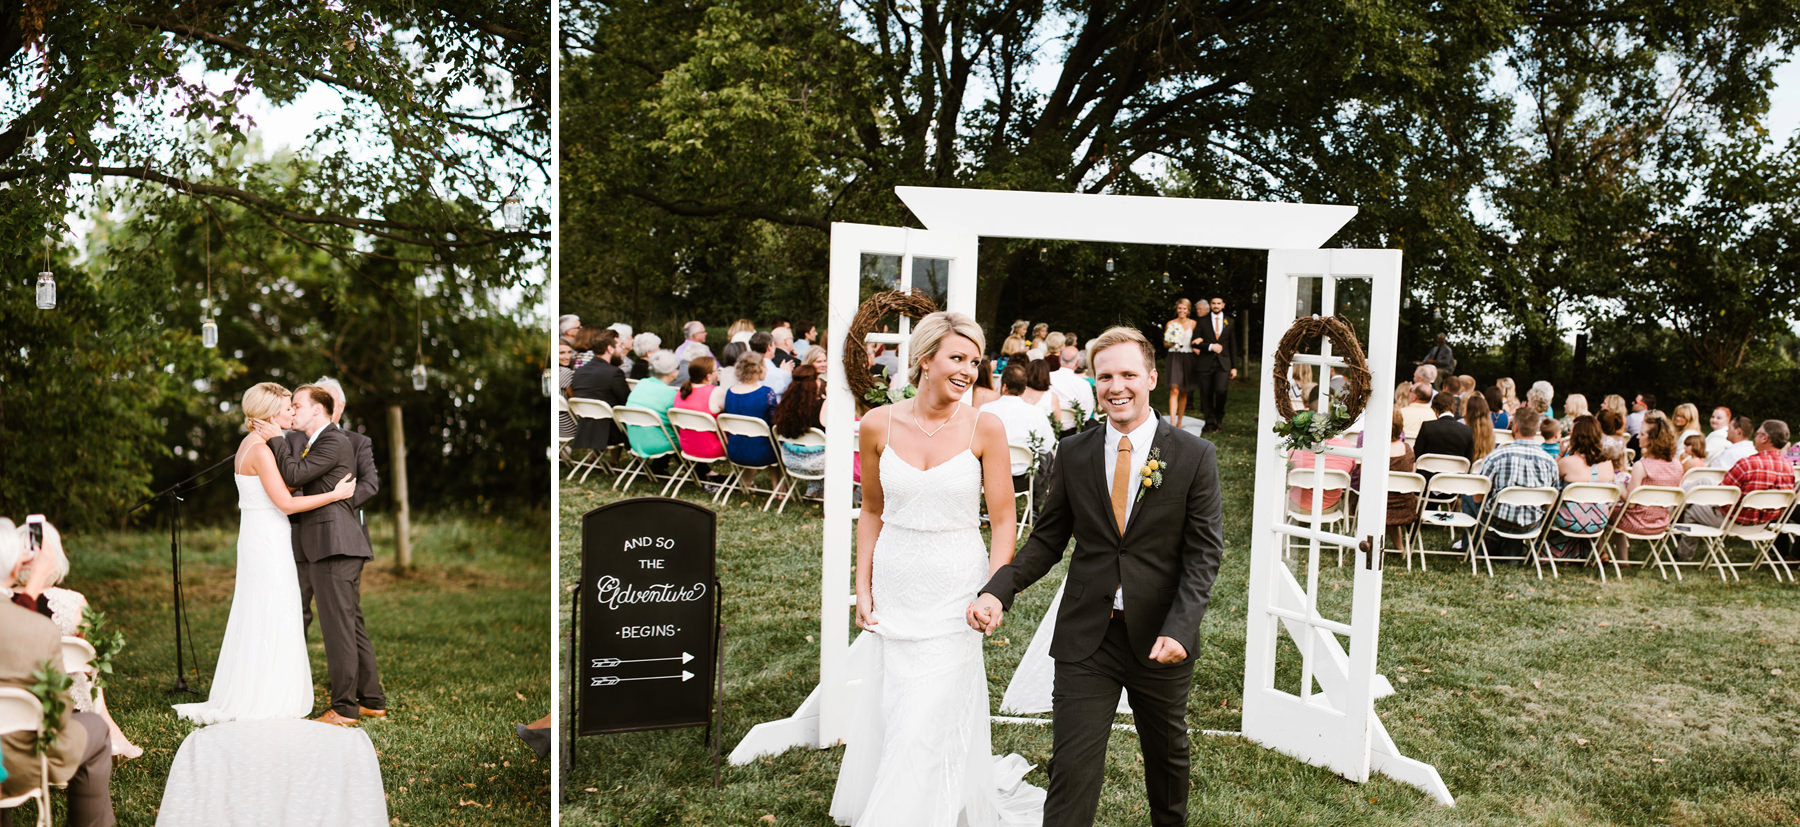 89_Alldredge Orchards Outdoor Wedding Kansas City, Missouri_Kindling Wedding Photography.JPG